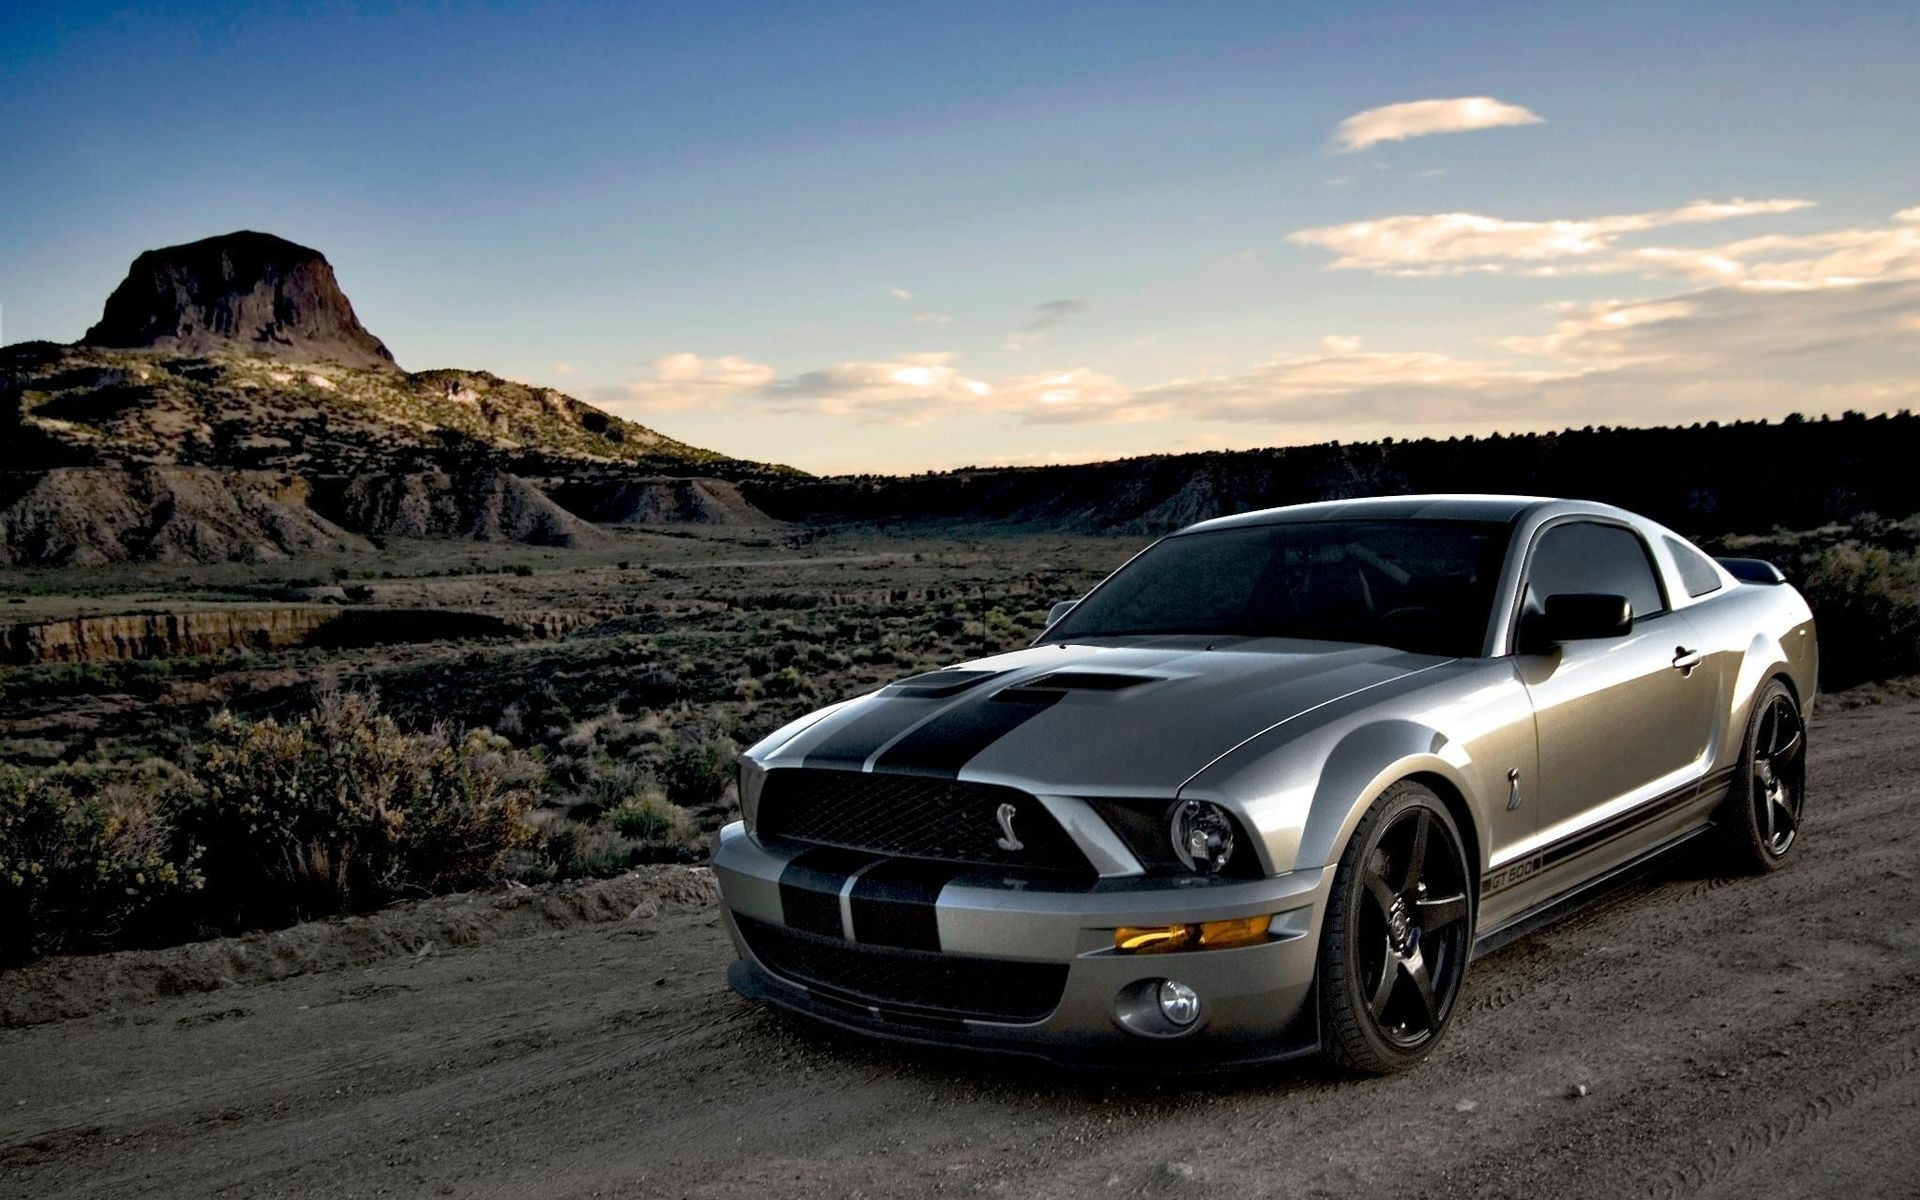 Ford Mustang Wallpapers Hd 1920x1200 Download Hd Wallpaper Wallpapertip